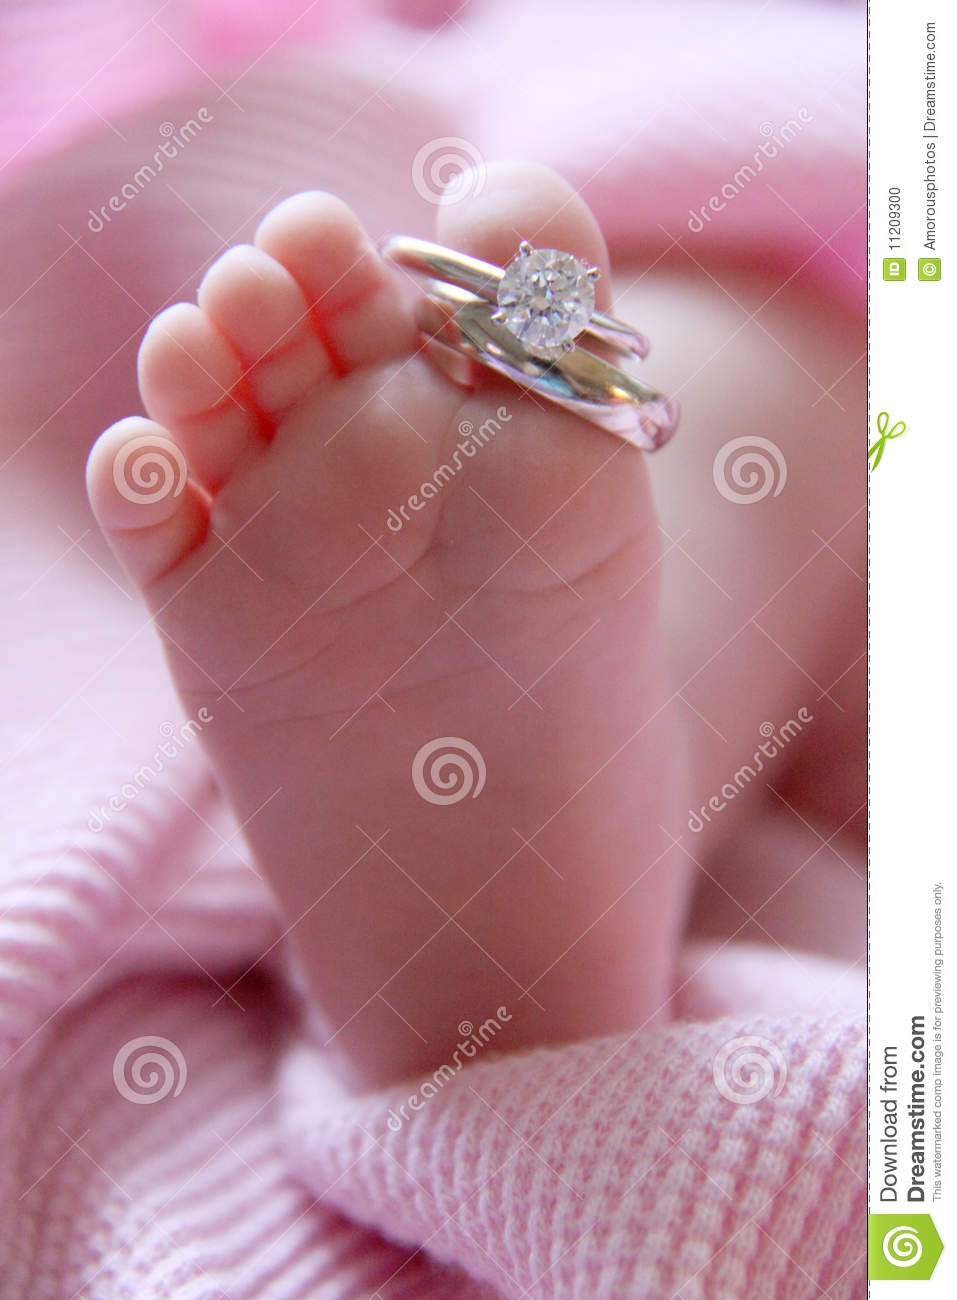 Baby Foot And Wedding Rings Stock Photo  Image: 11209300